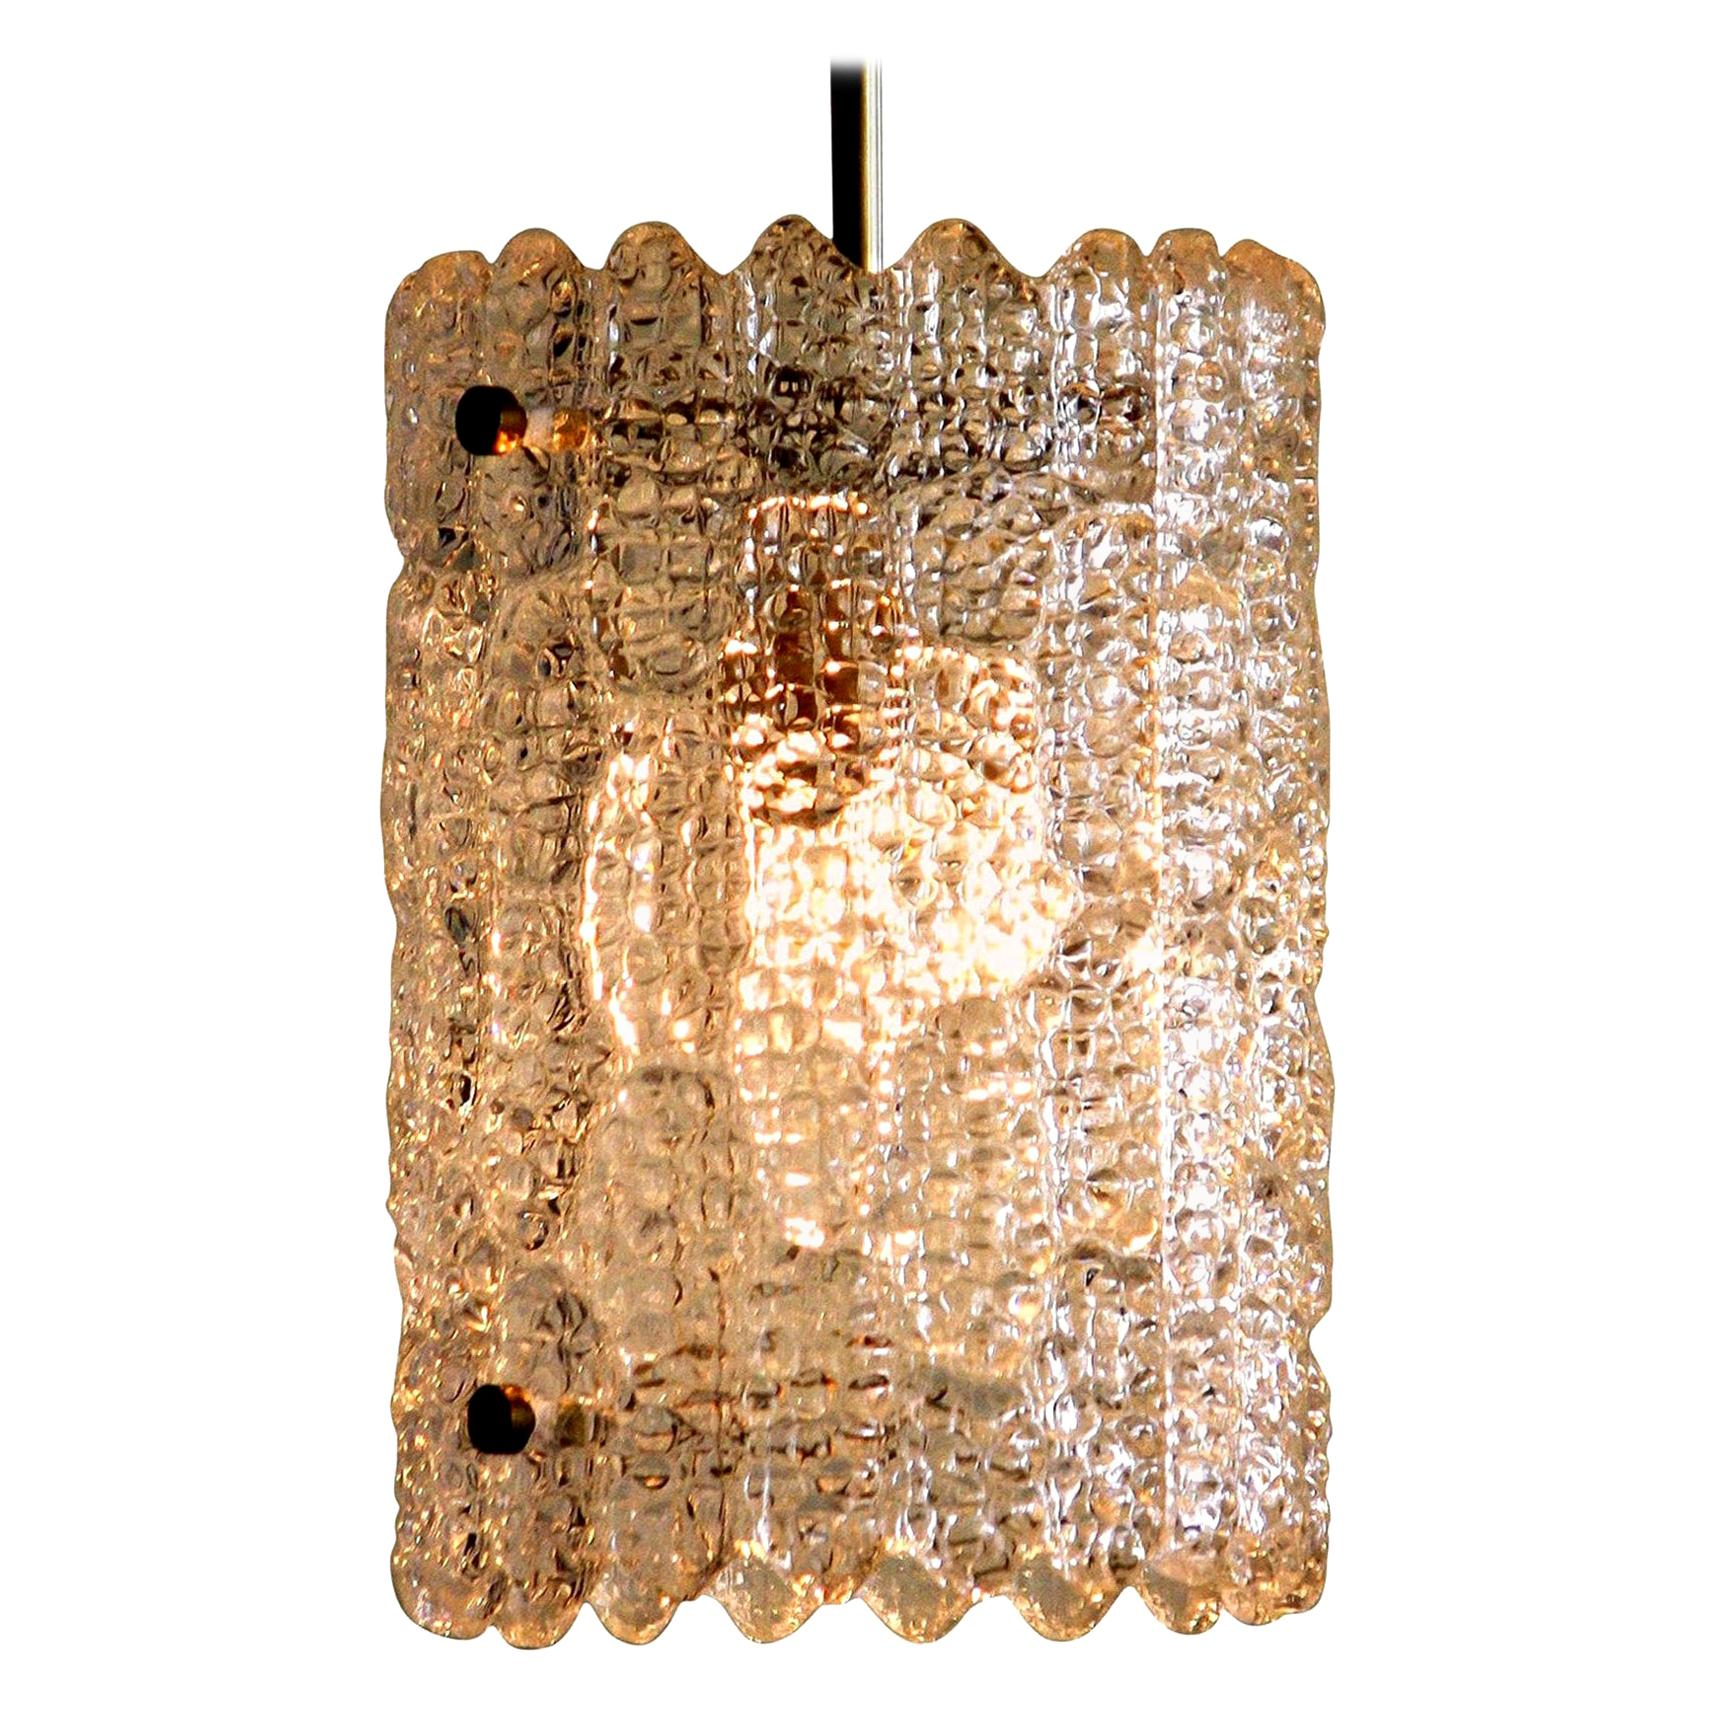 1960s, Brass and Crystal Glass Pendant by Carl Fagerlund for Orrefors